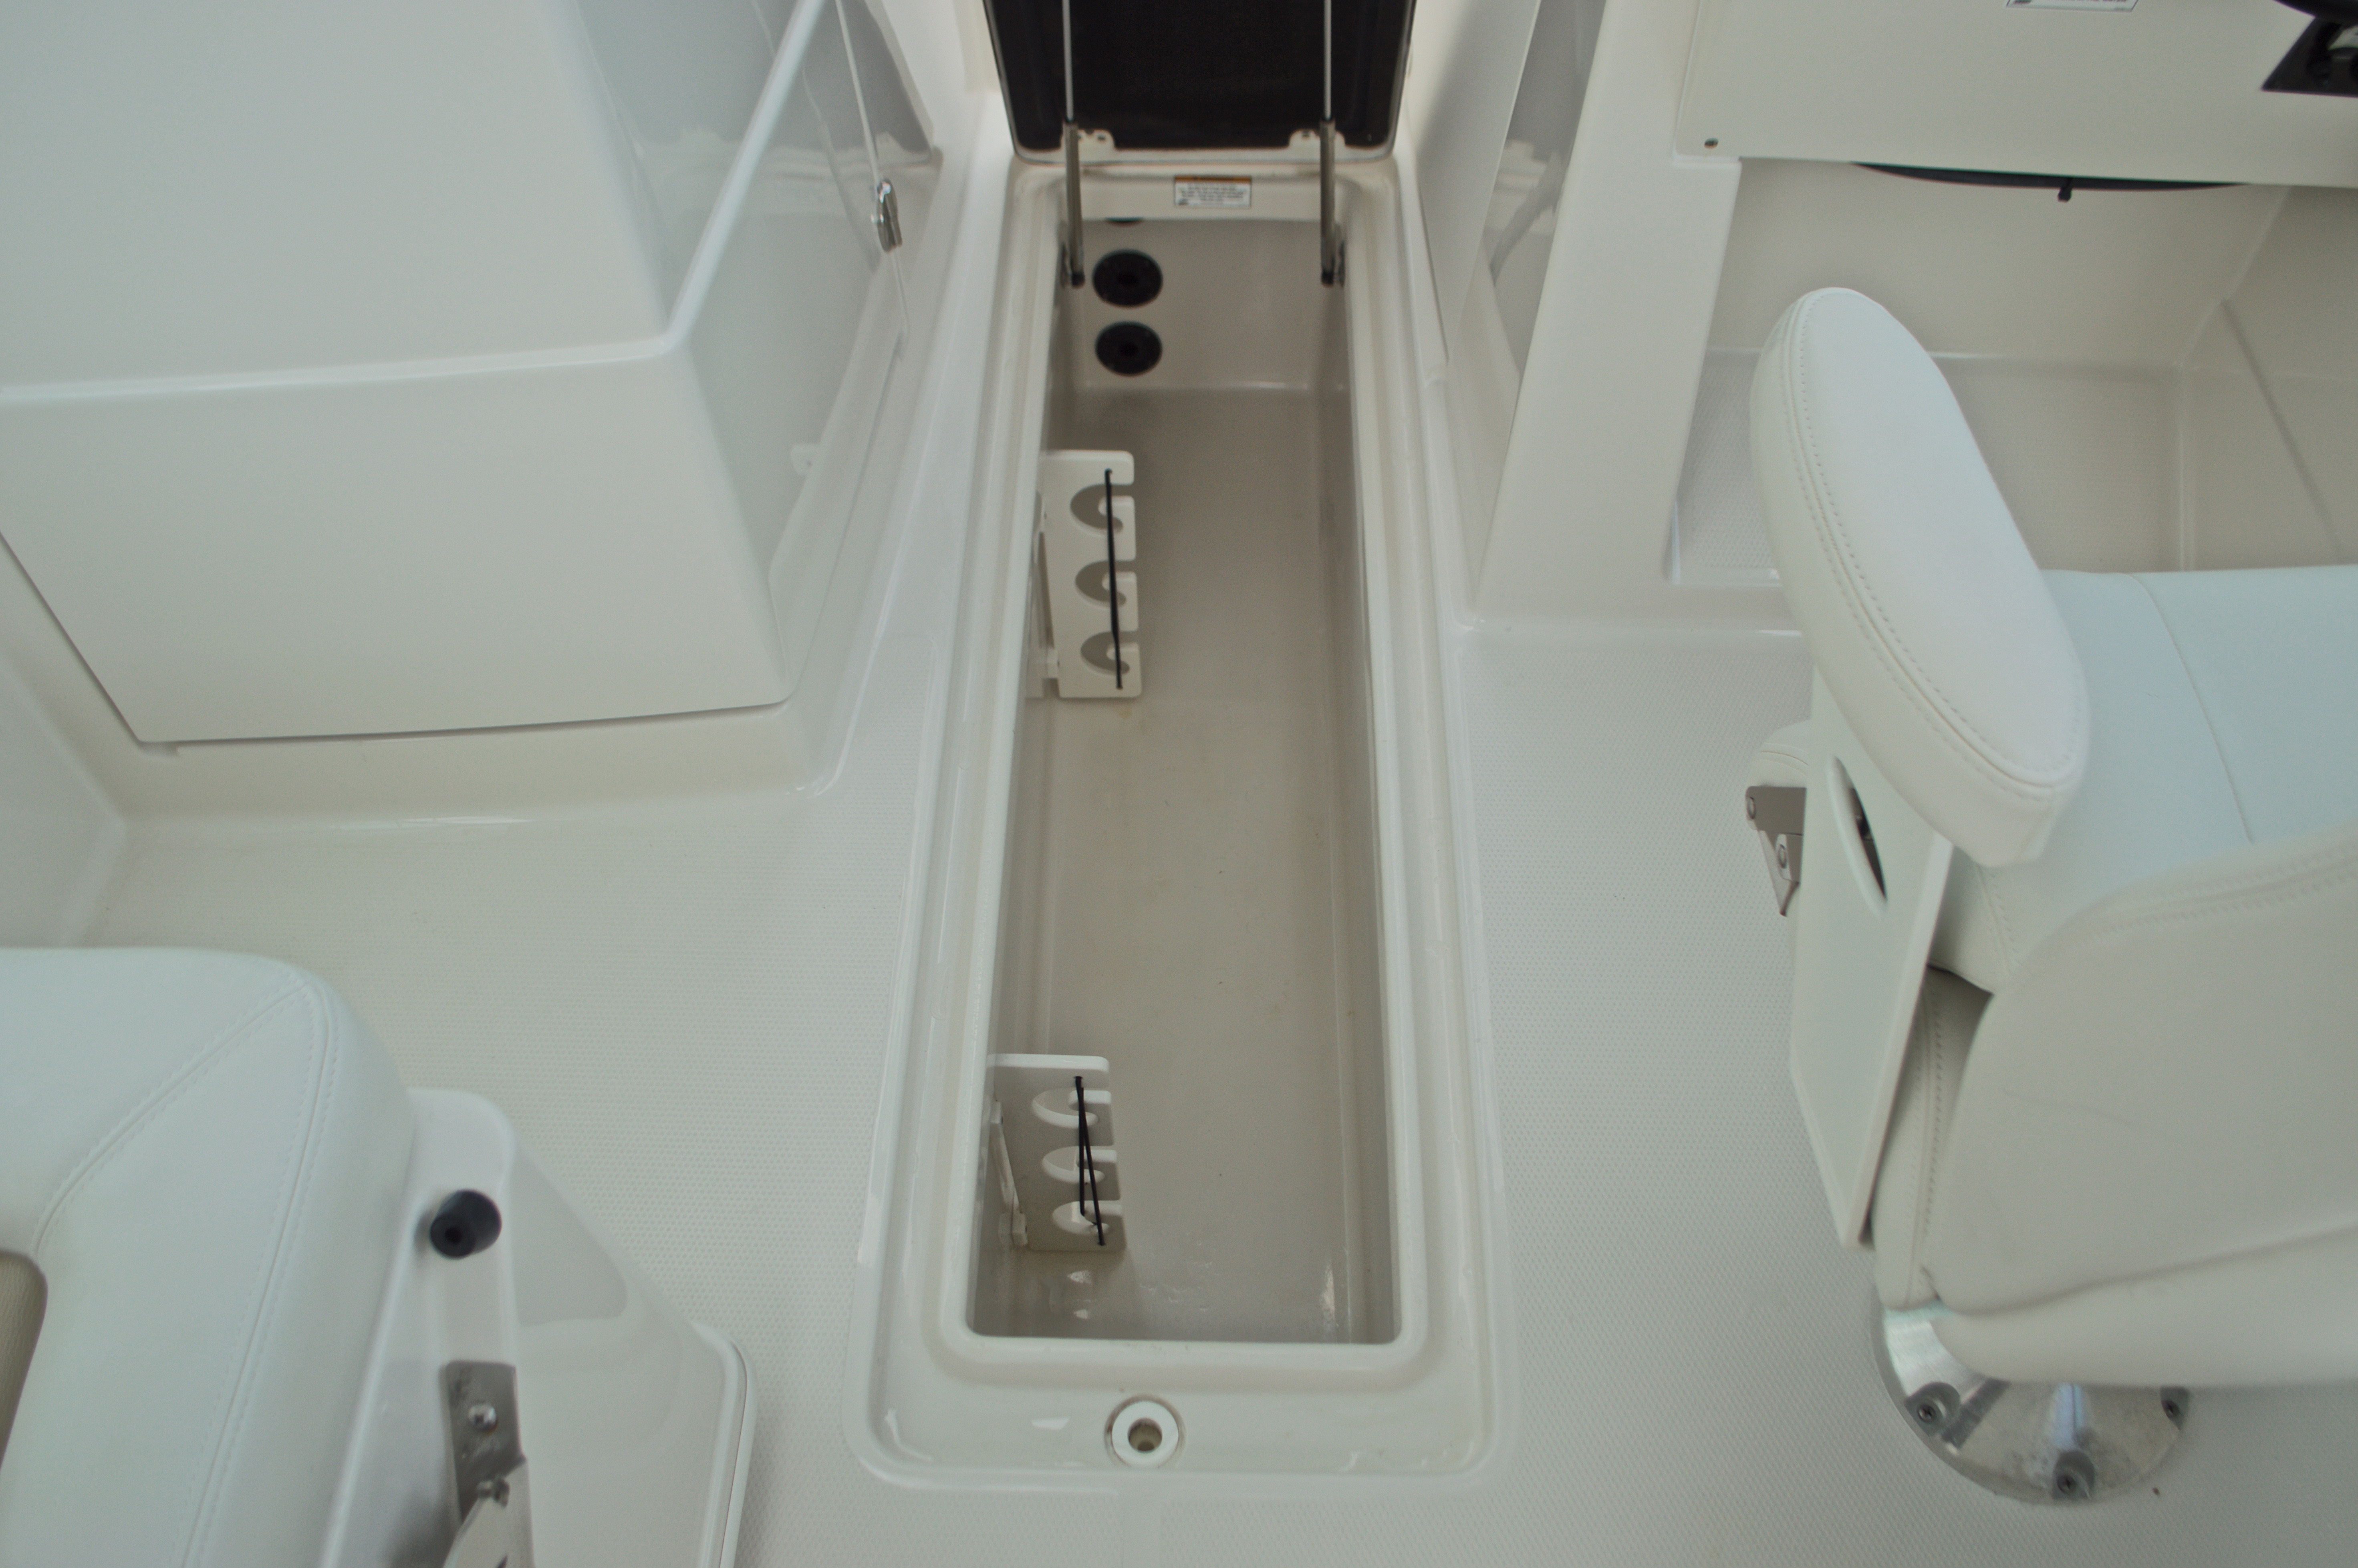 Thumbnail 58 for Used 2016 Sailfish 275 Dual Console boat for sale in West Palm Beach, FL